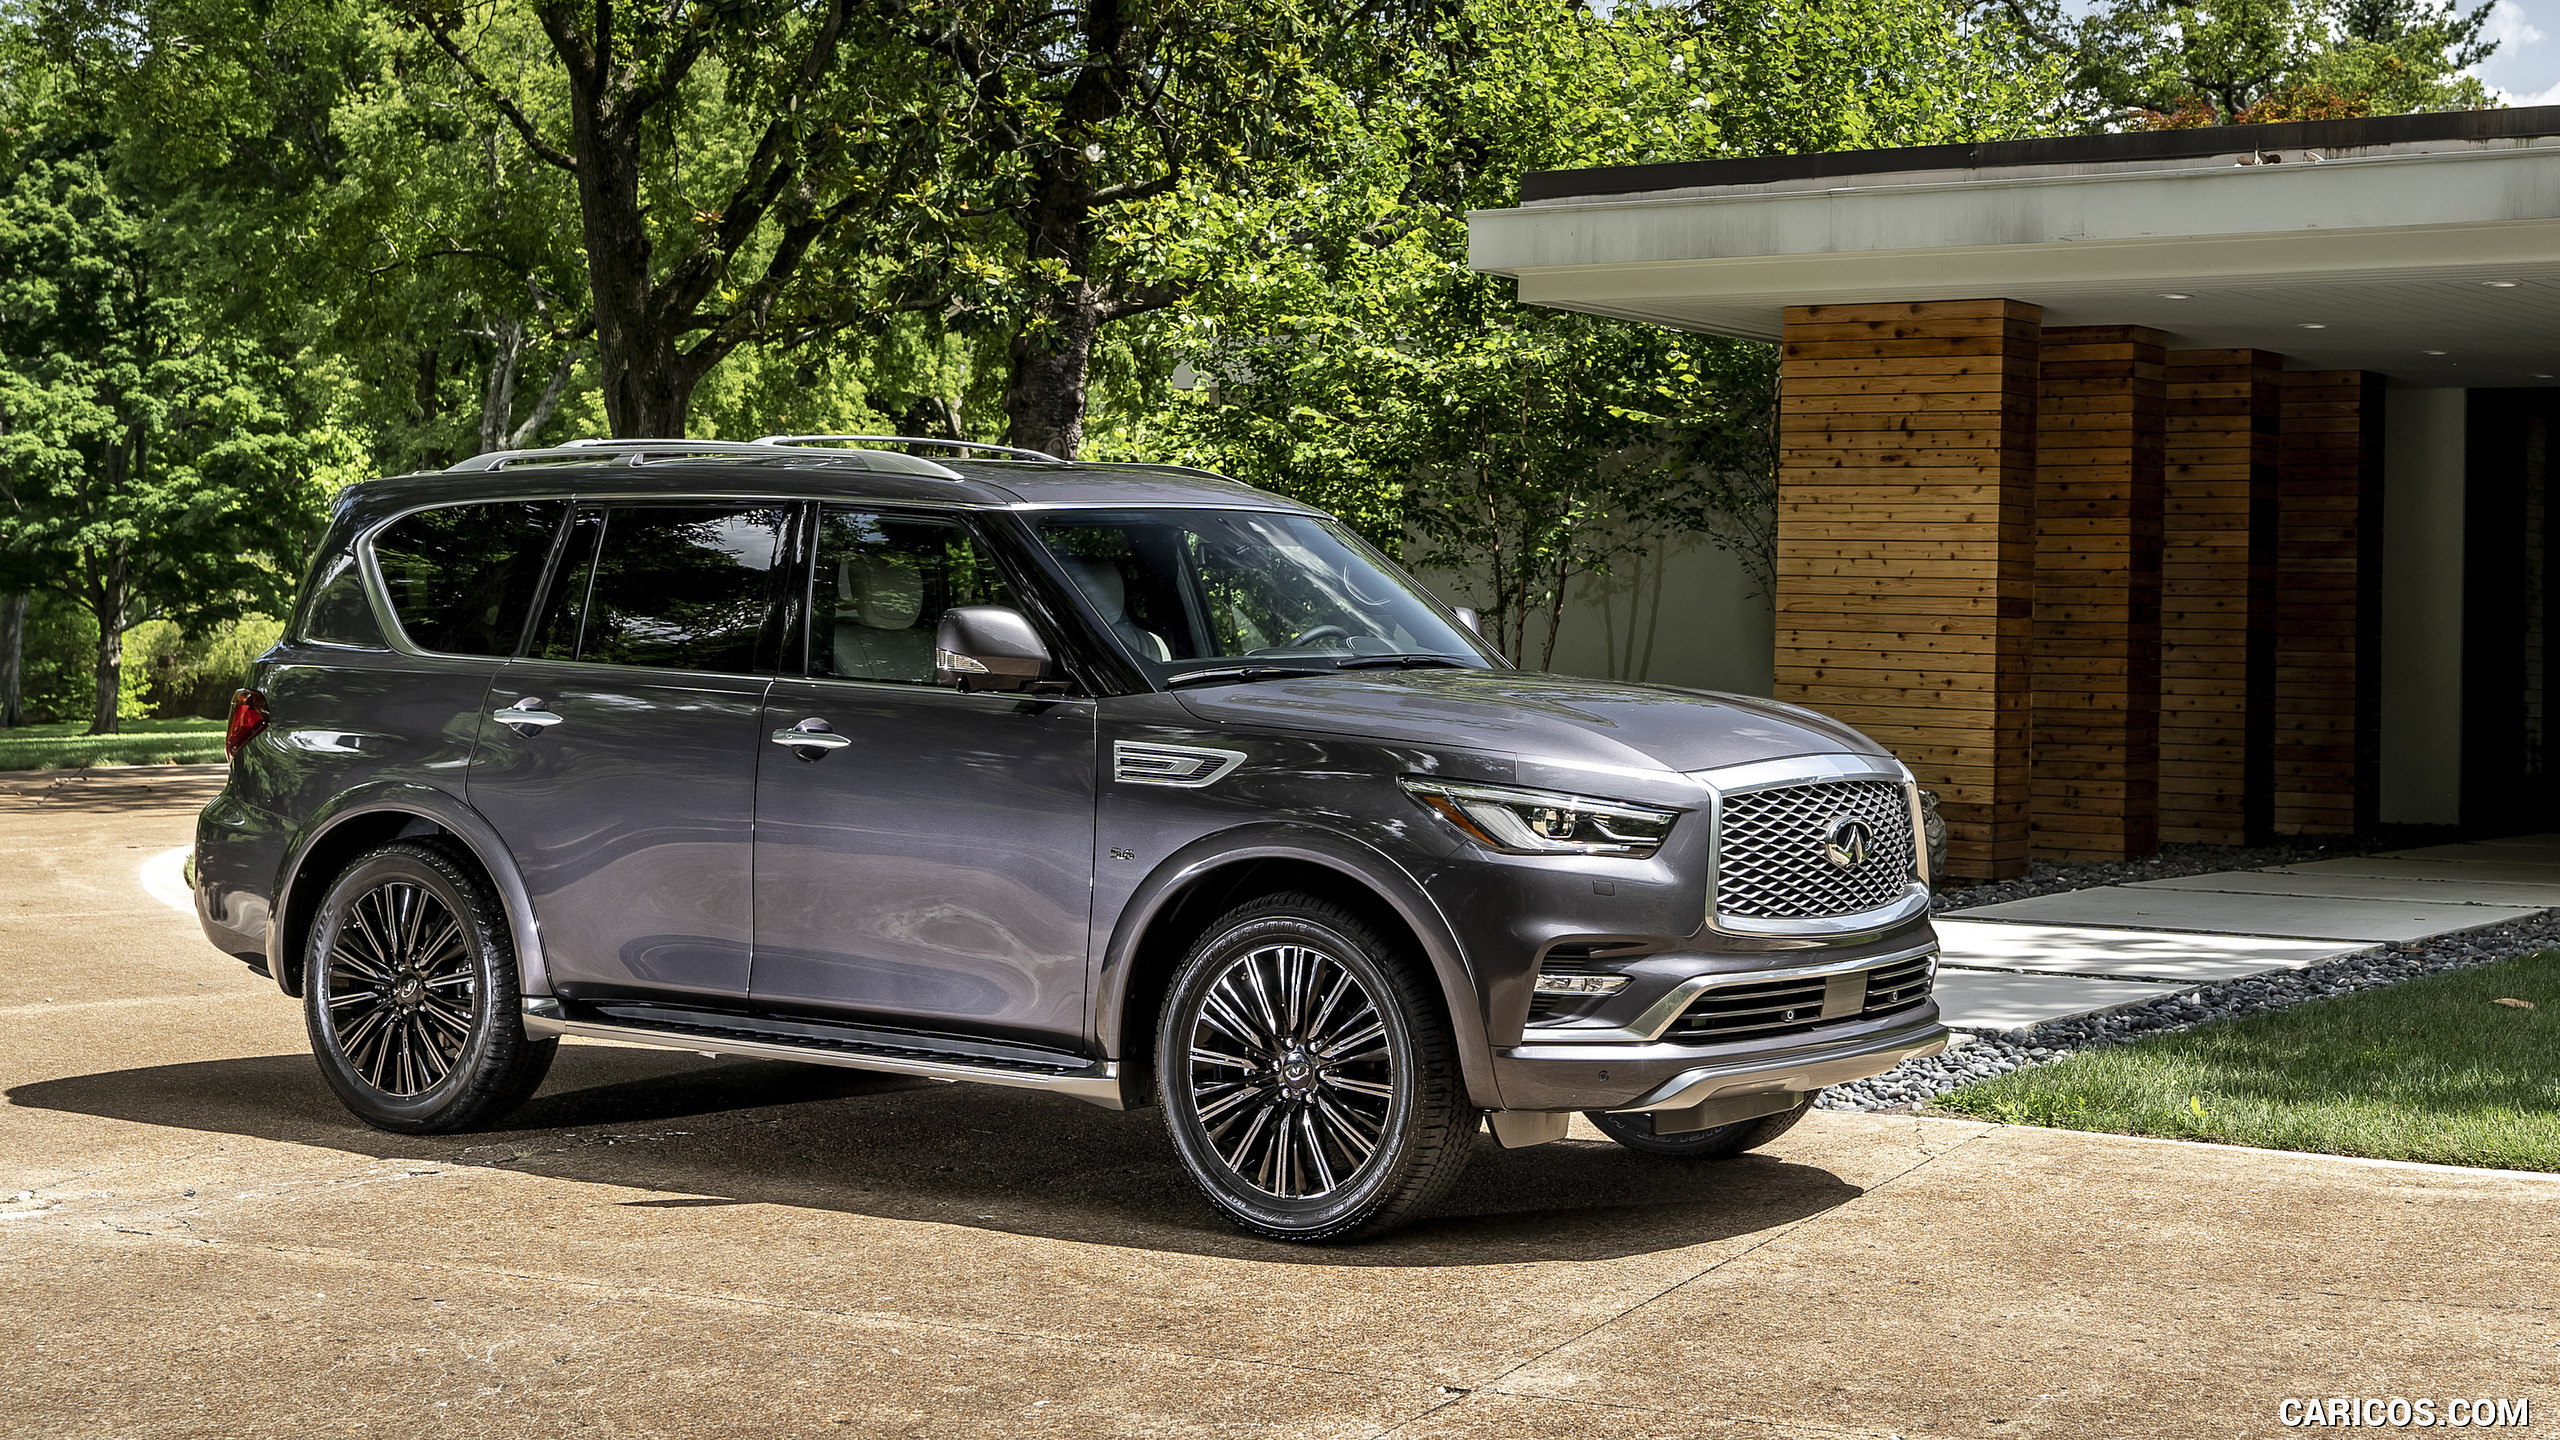 2560x1440 - Infiniti QX80 Wallpapers 34